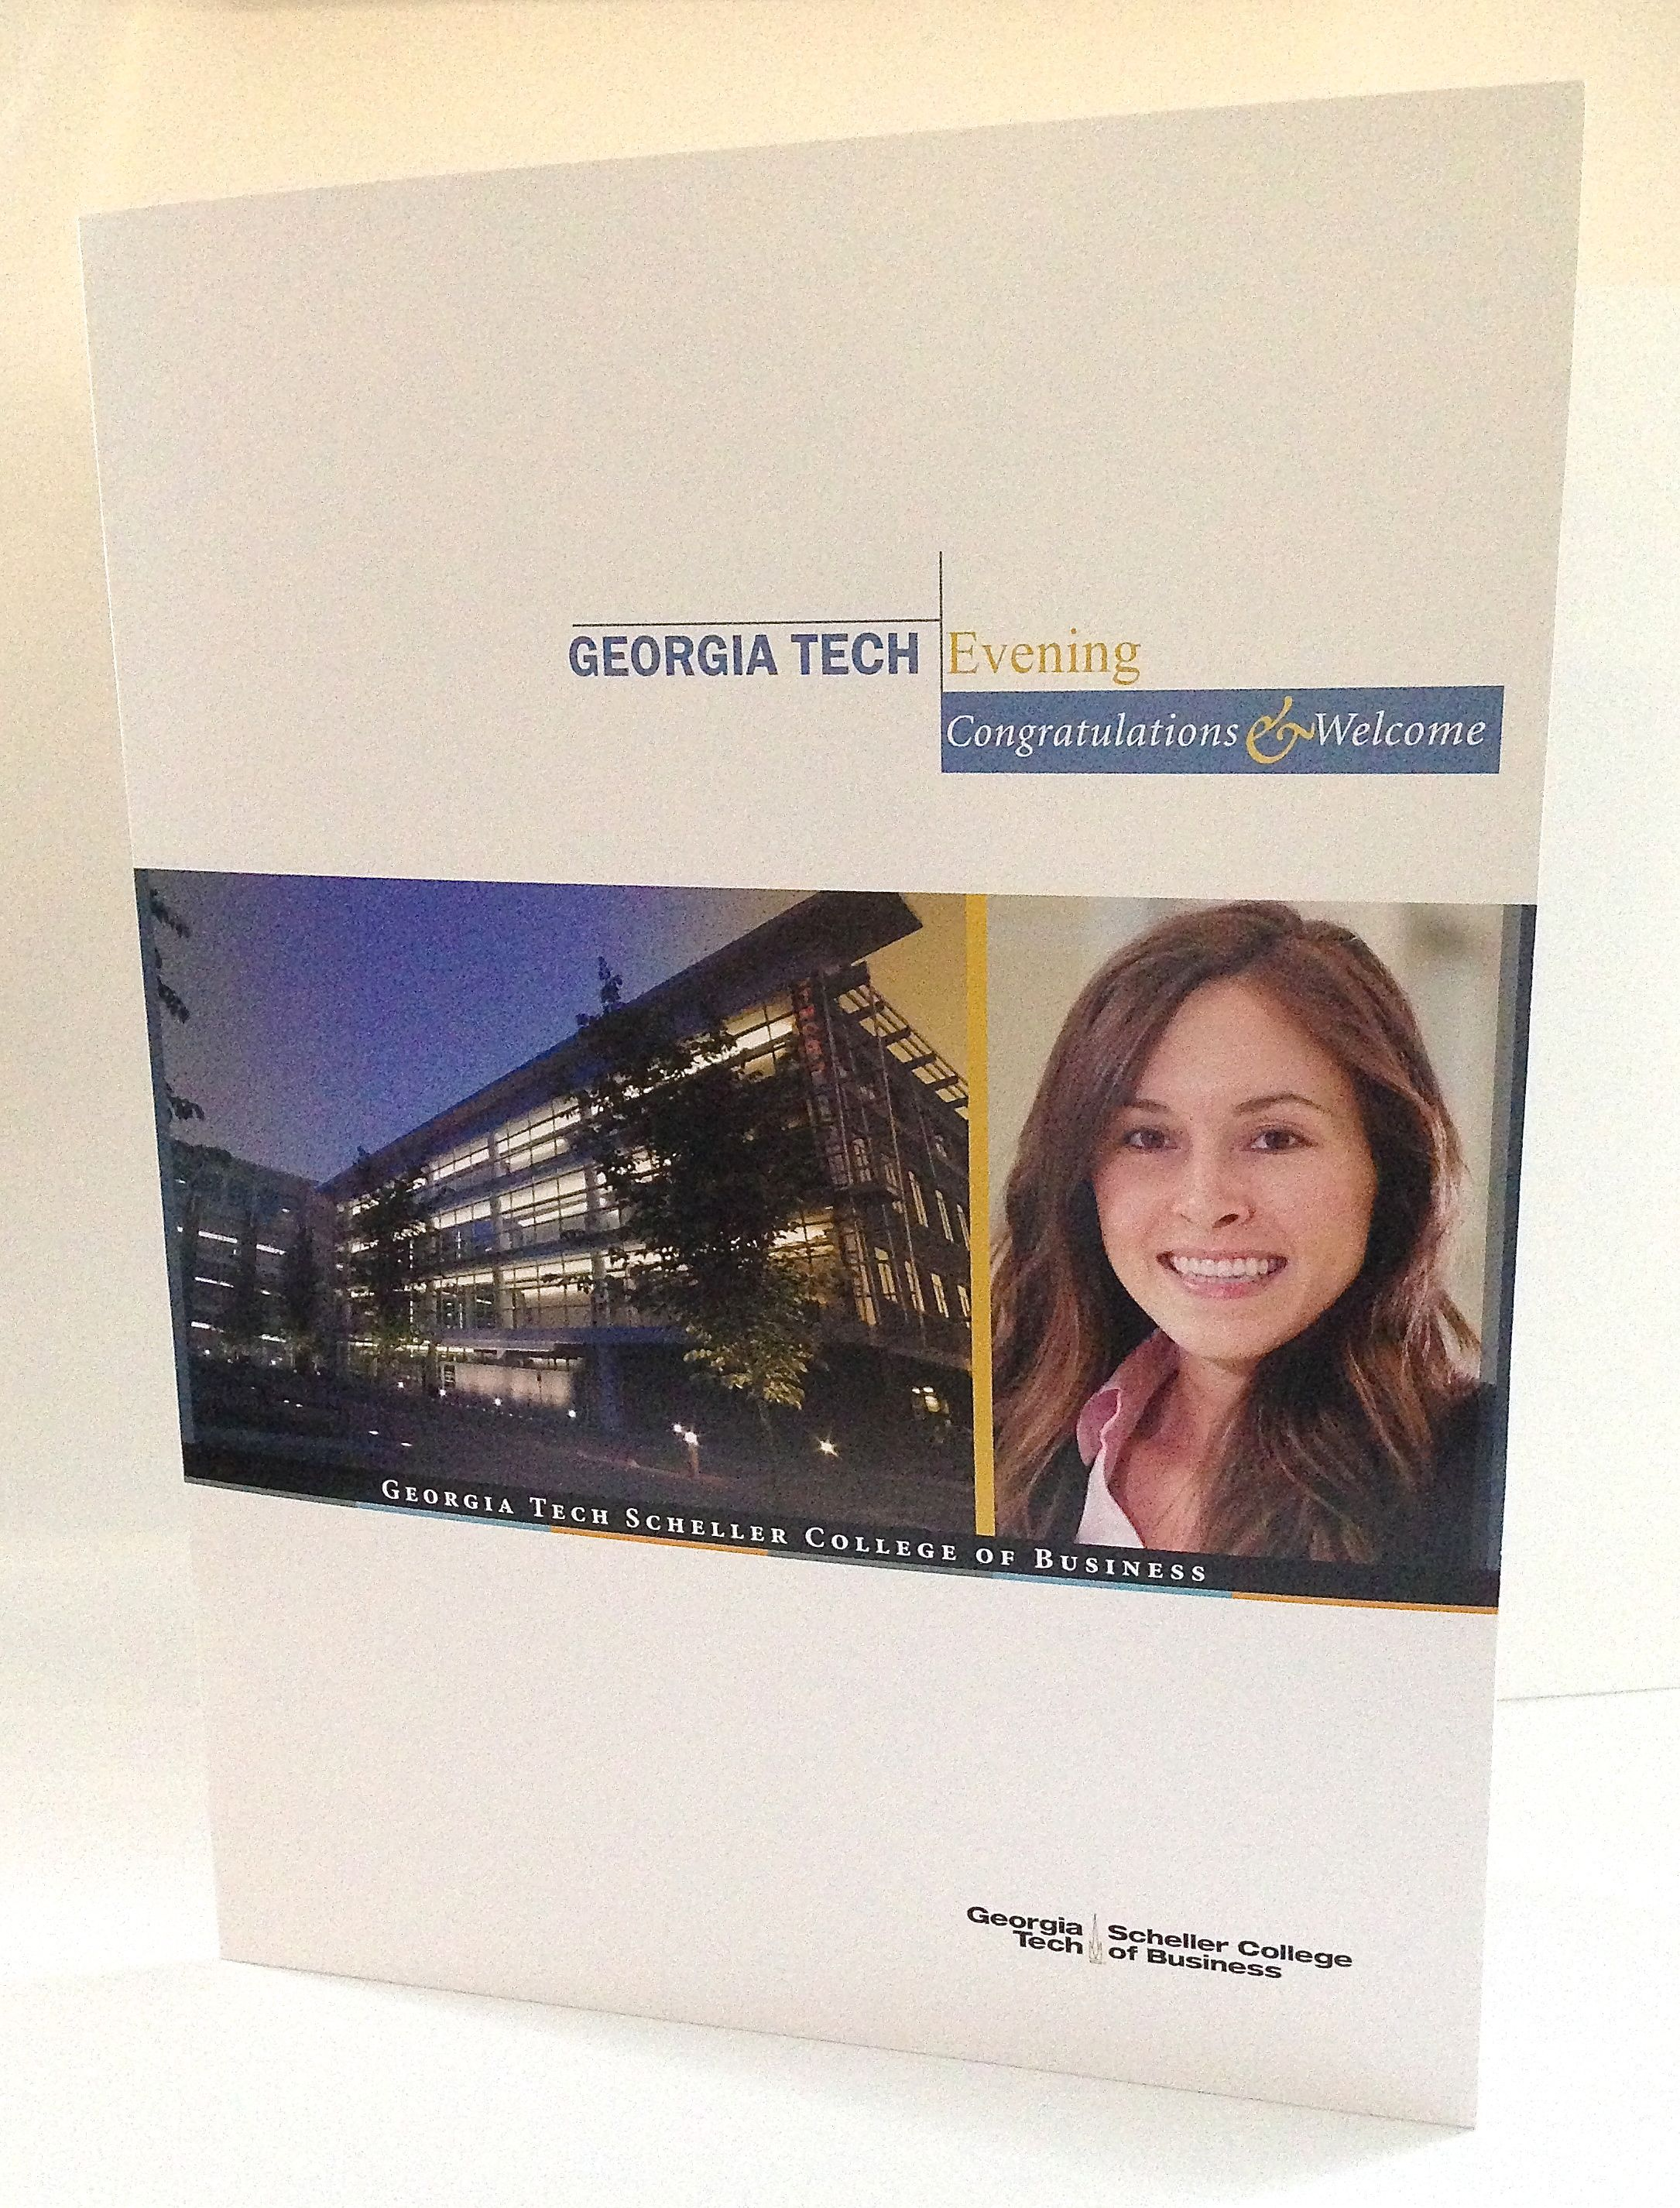 Today's client spotlight is for the Tech Scheller